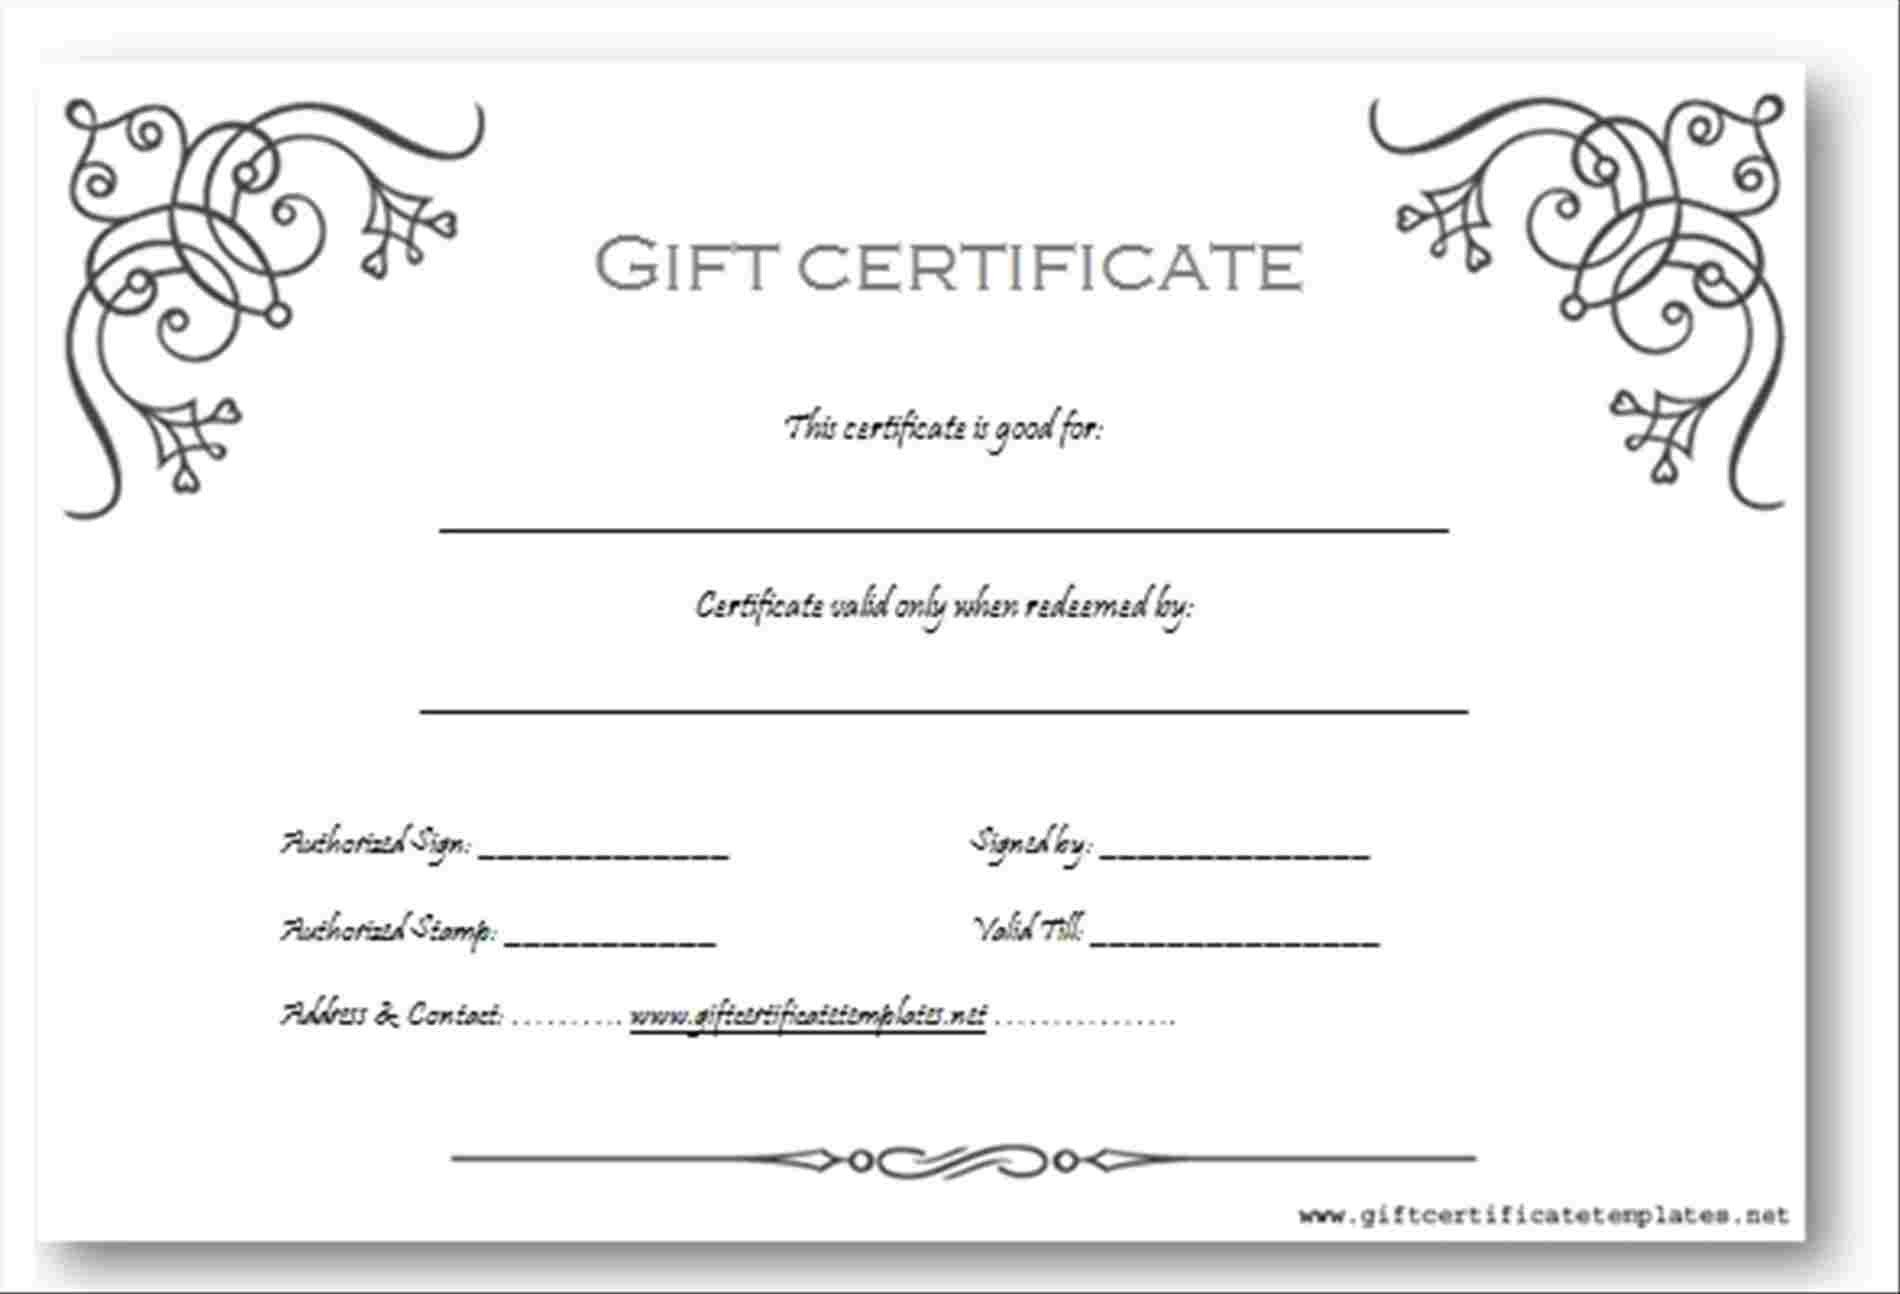 Gift Certificate Template Word Gift Voucher Templates Word Pics – Gift Voucher Template 3